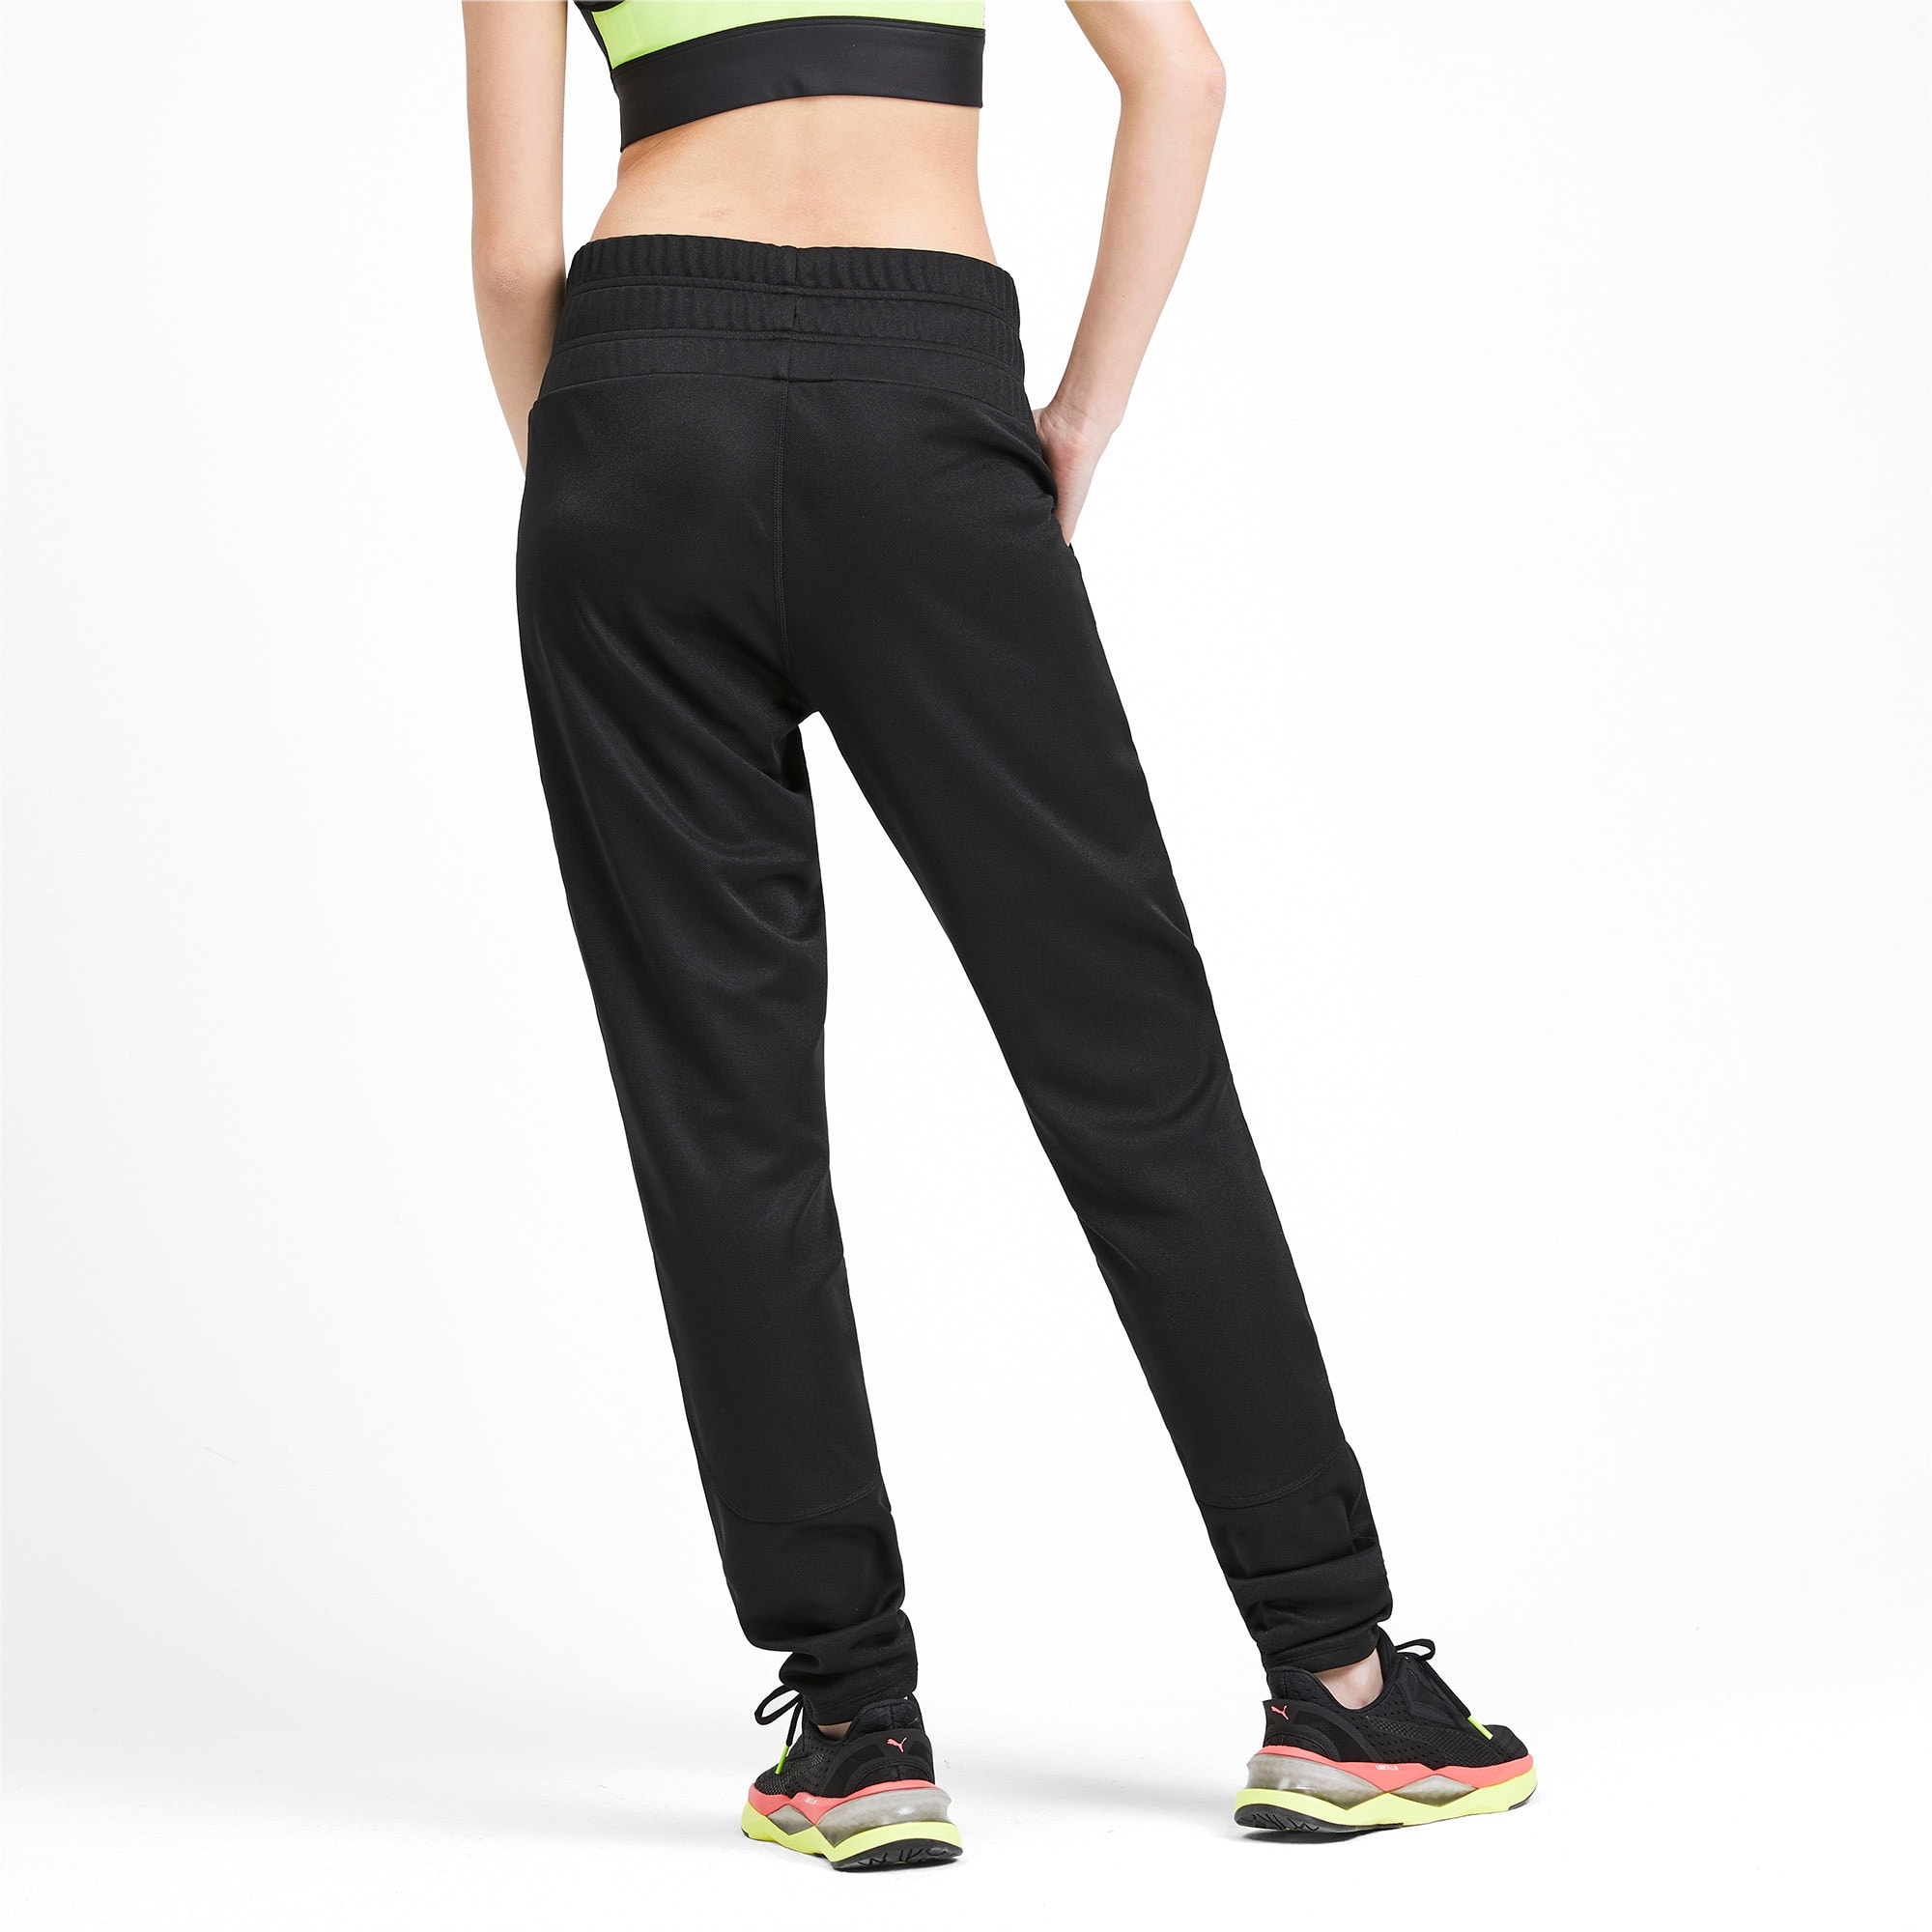 Thumbnail 2 of SHIFT Damen Training Gestrickte Sweatpants, Puma Black, medium